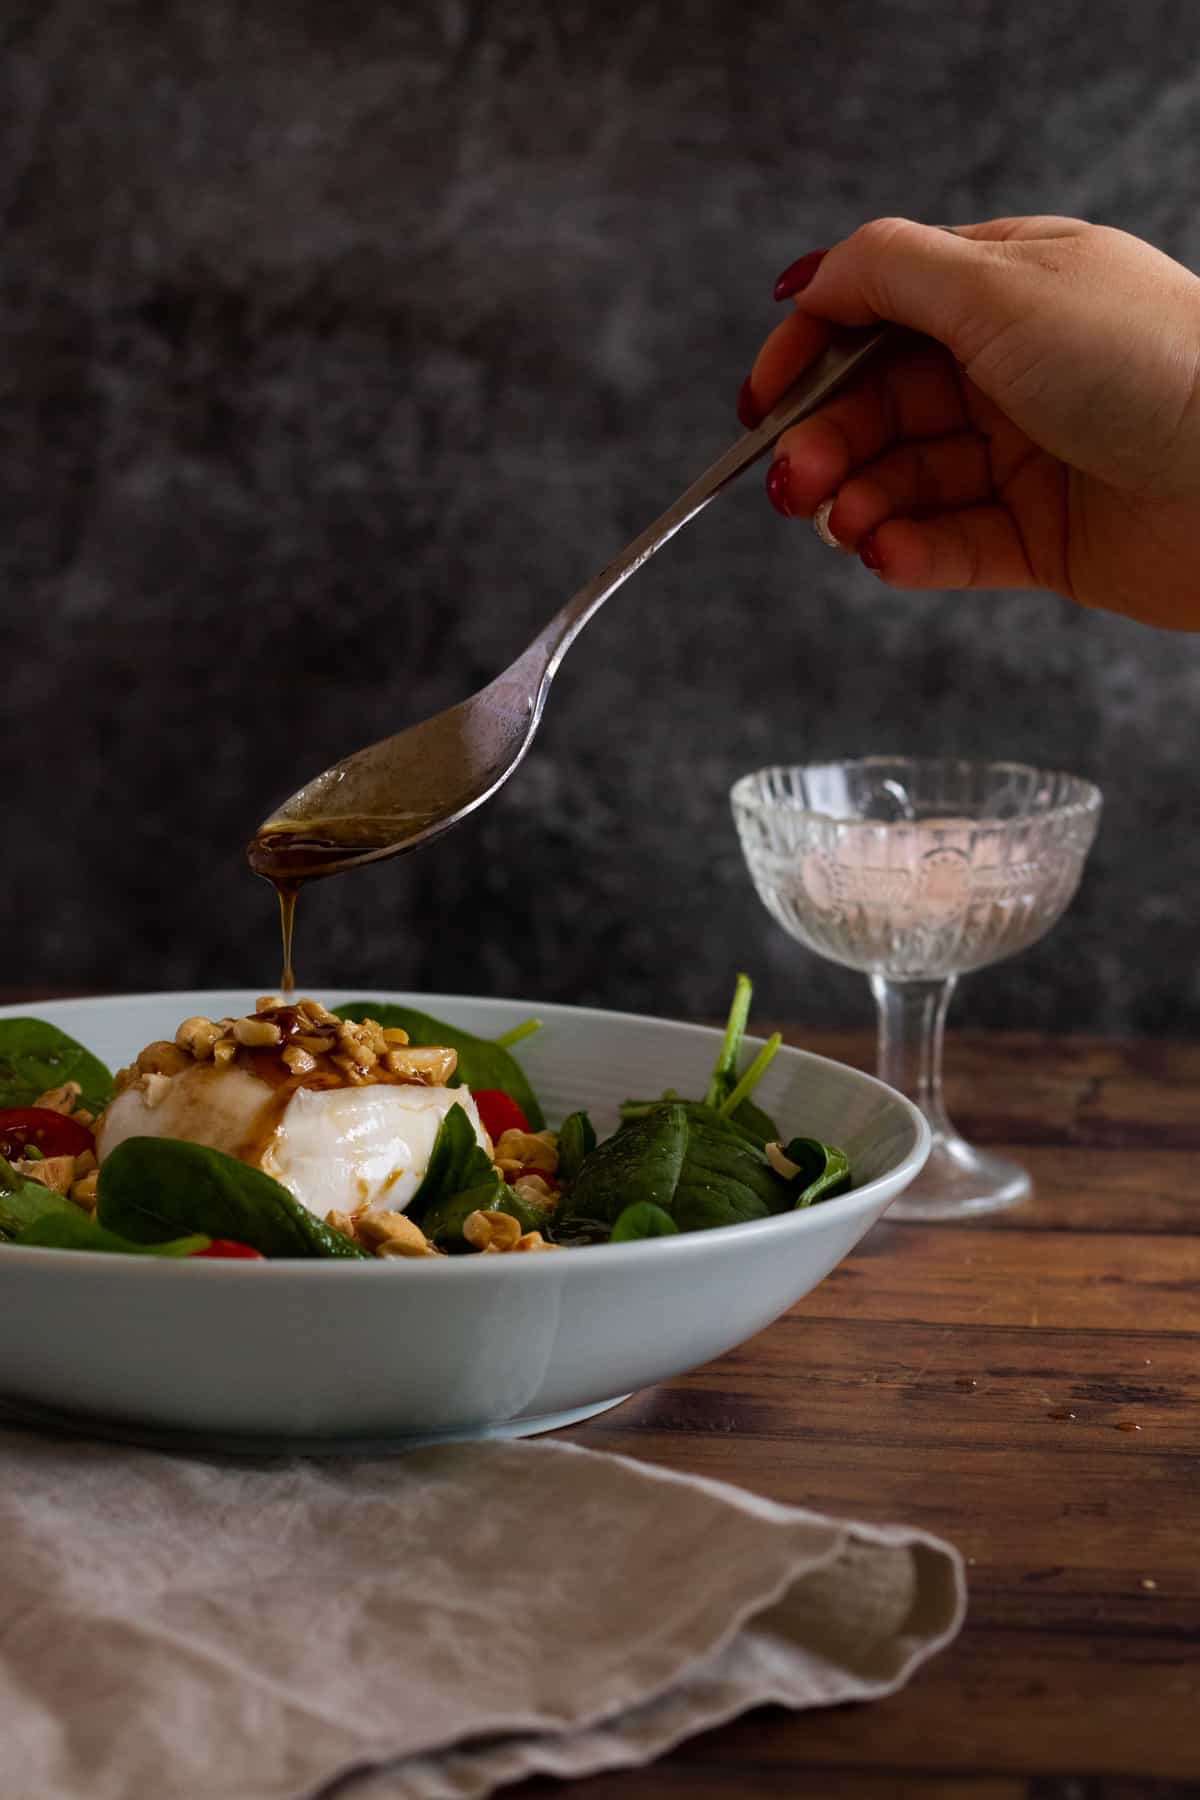 vinaigrette being drizzled over a salad